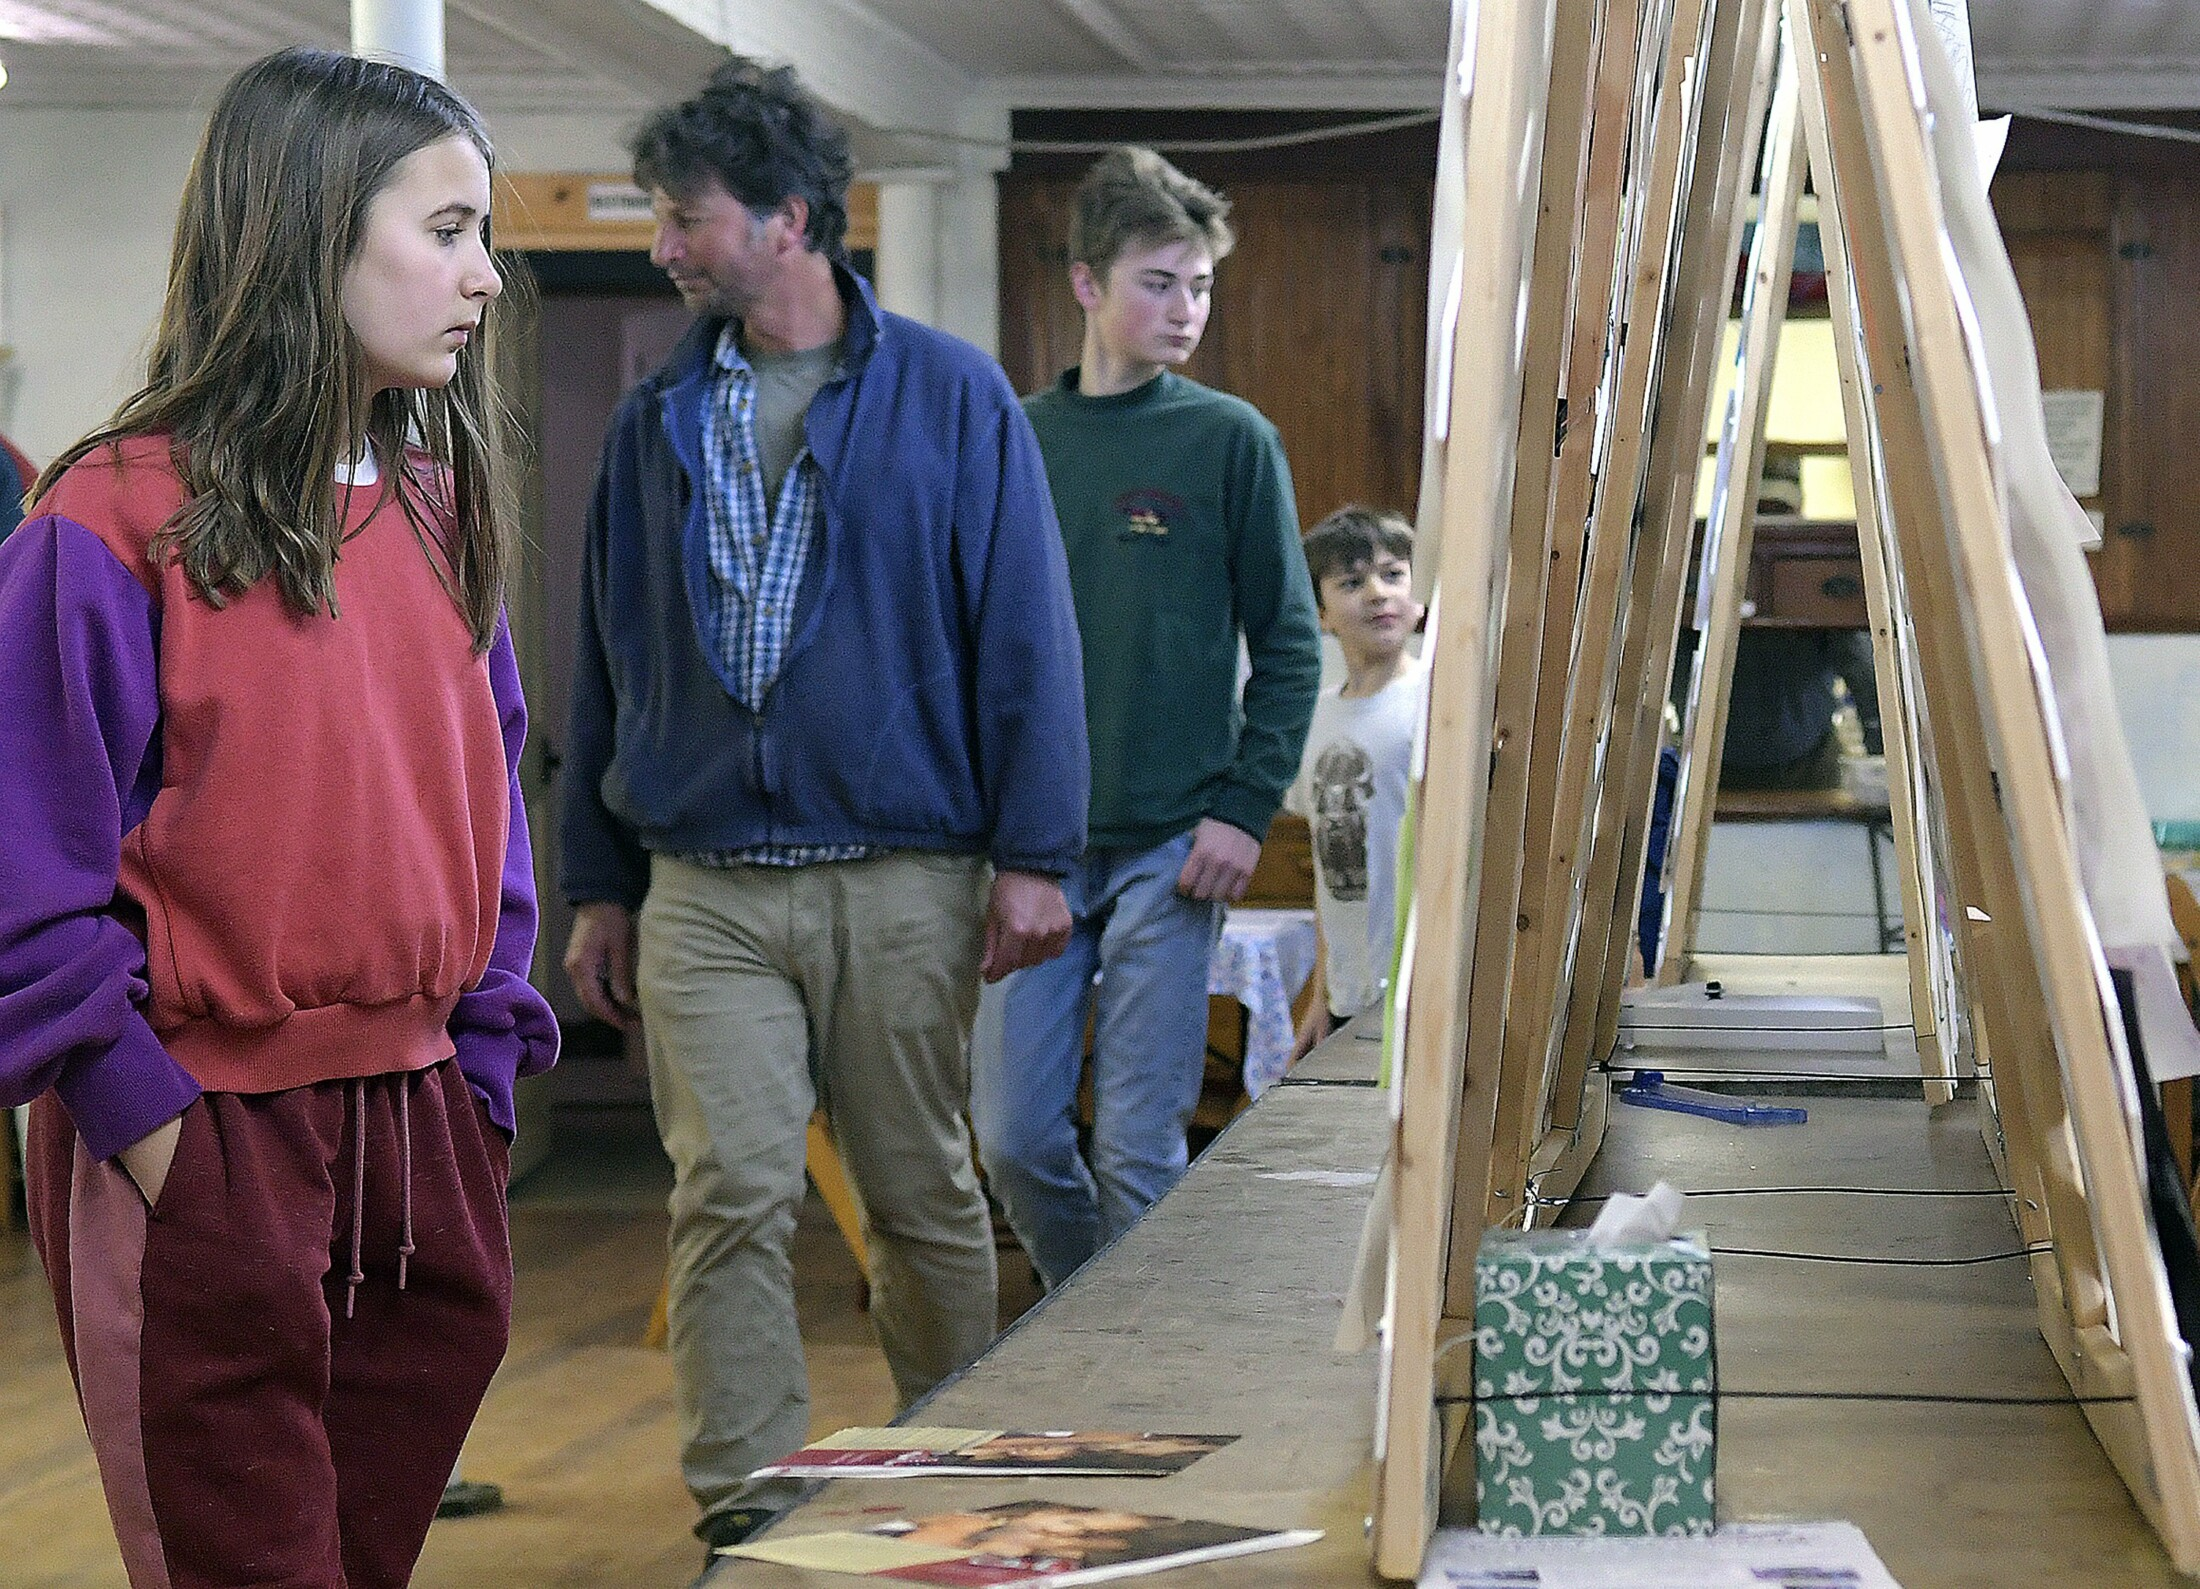 Art in many forms, from many ages, at Richmond Grange - CentralMaine.com